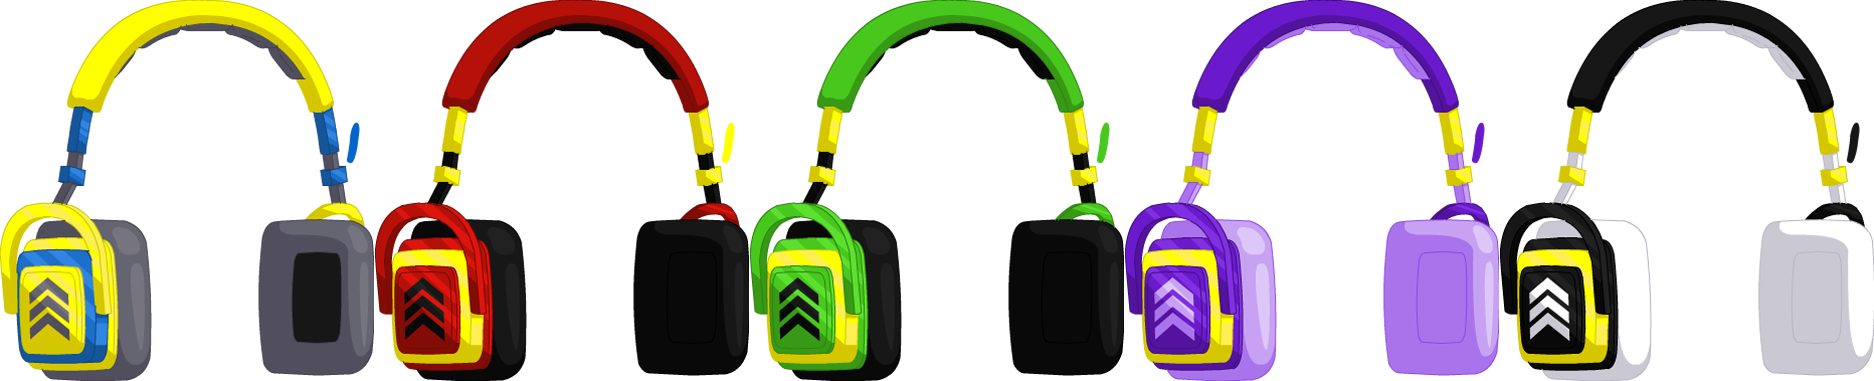 November 2008 Amped Headphones